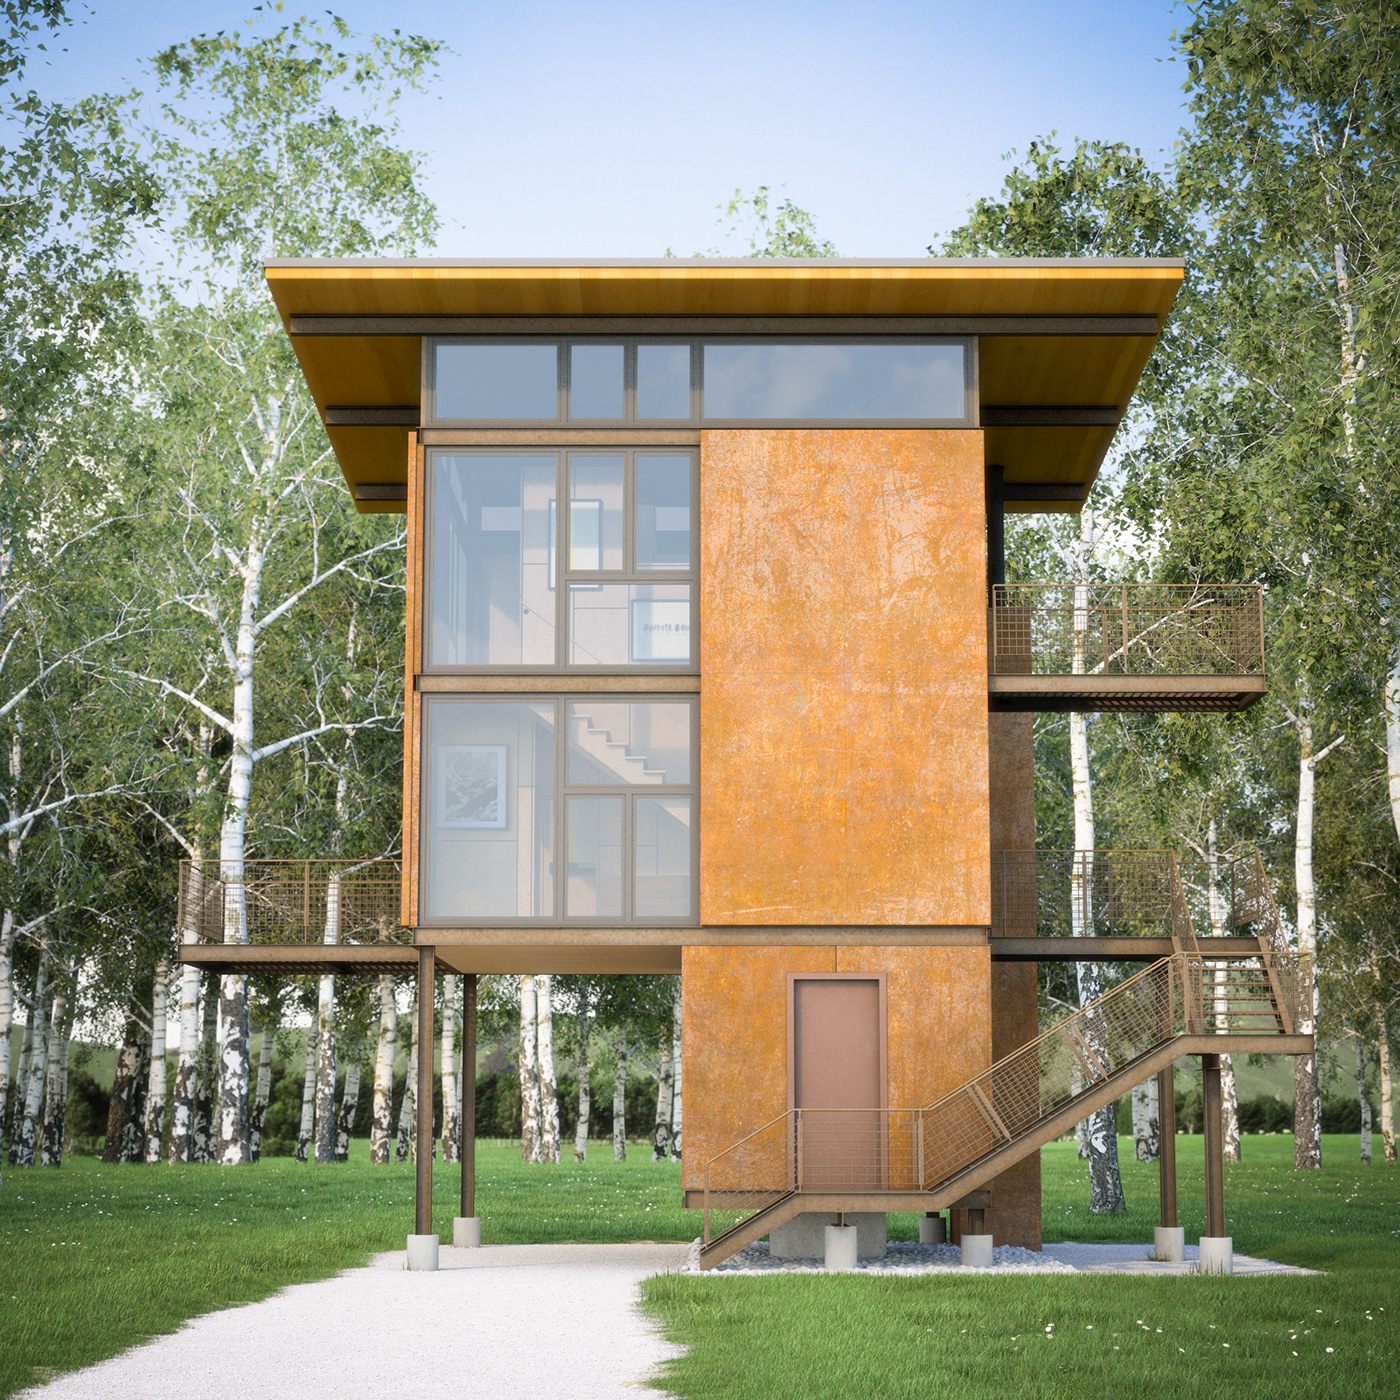 The 200 Square Foot Footprint Of The House Rises Above A 40 Acre, 100 Year  Flood Plain Adjacent To The Methow River.